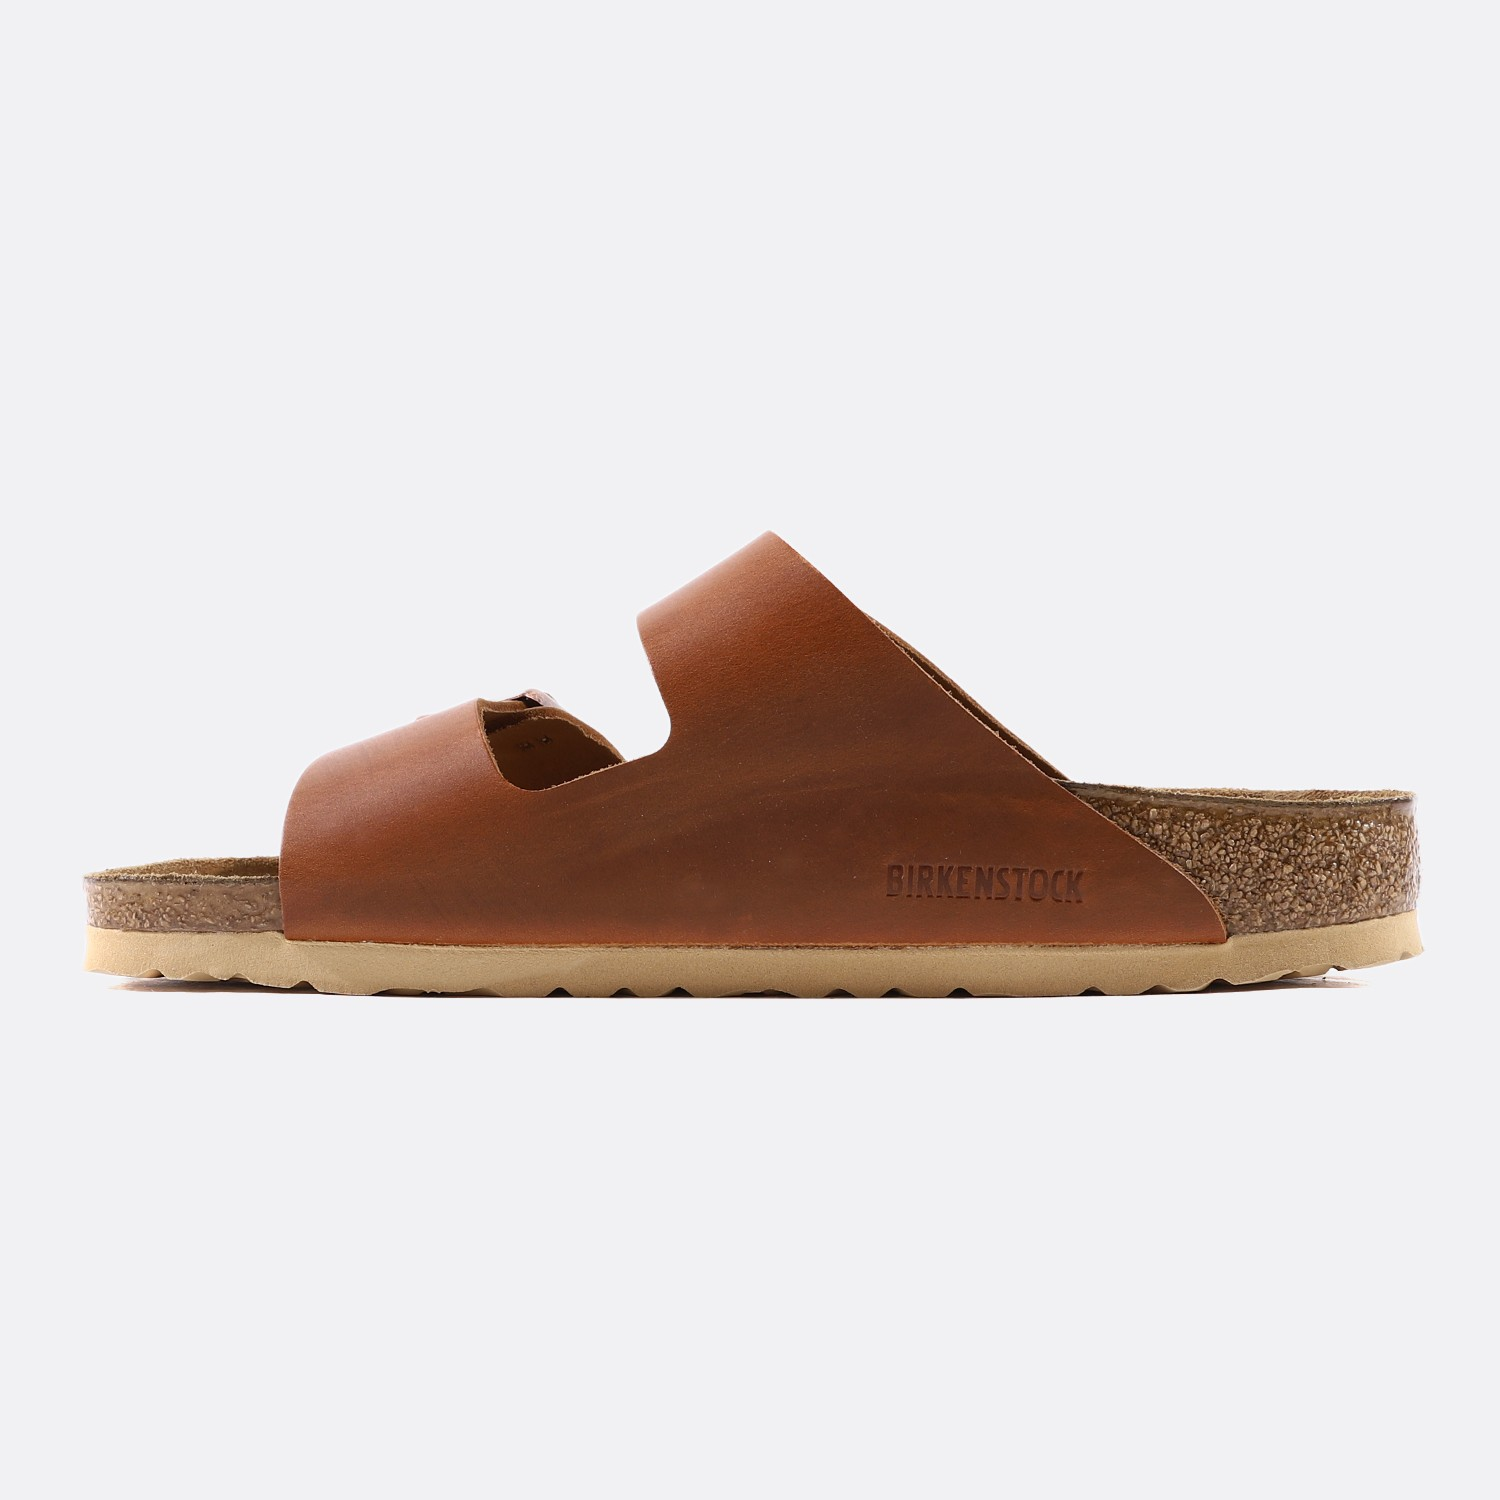 BIRKENSTOCK ARIZONA CUIR NATUREL ANTIQUE PULL COGNAC